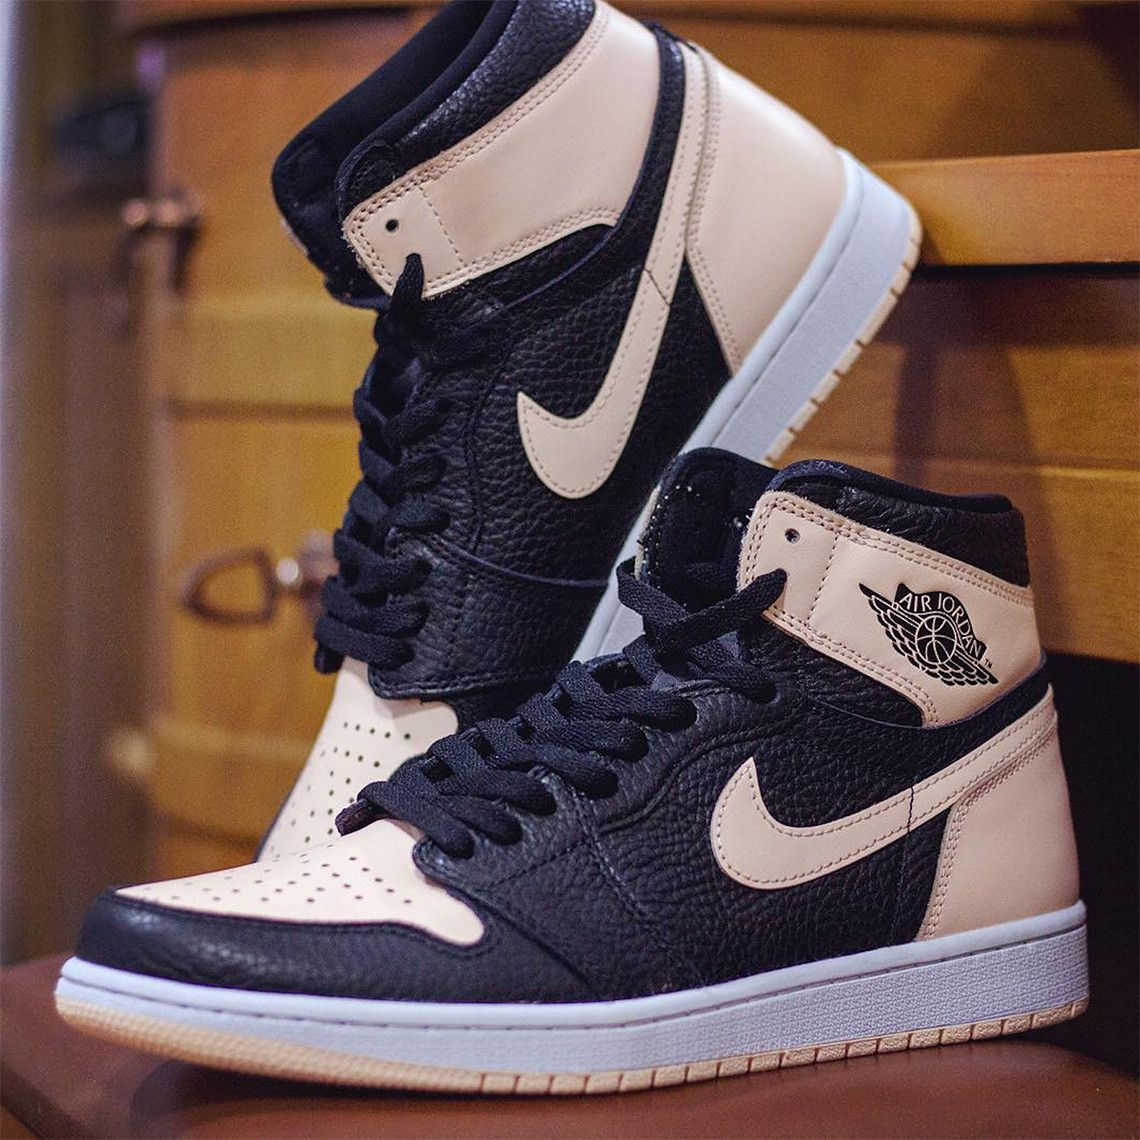 dd911bf4435 The Air Jordan 1 Retro High OG Crimson Tint Releases On April 27th ...